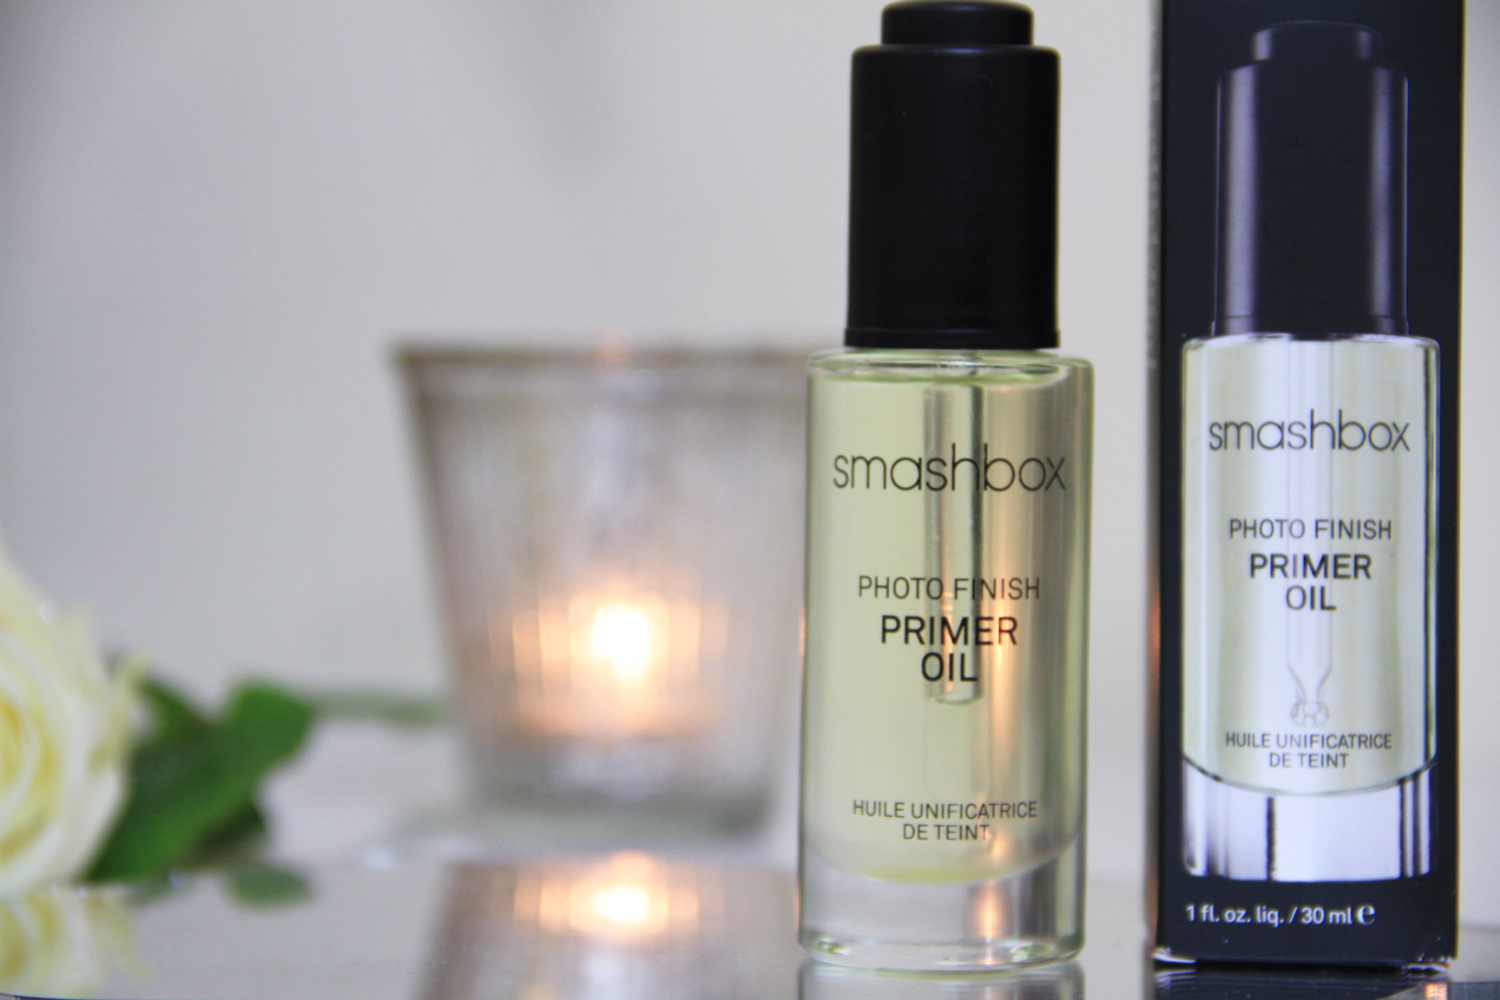 how to use smashbox photo finish primer oil